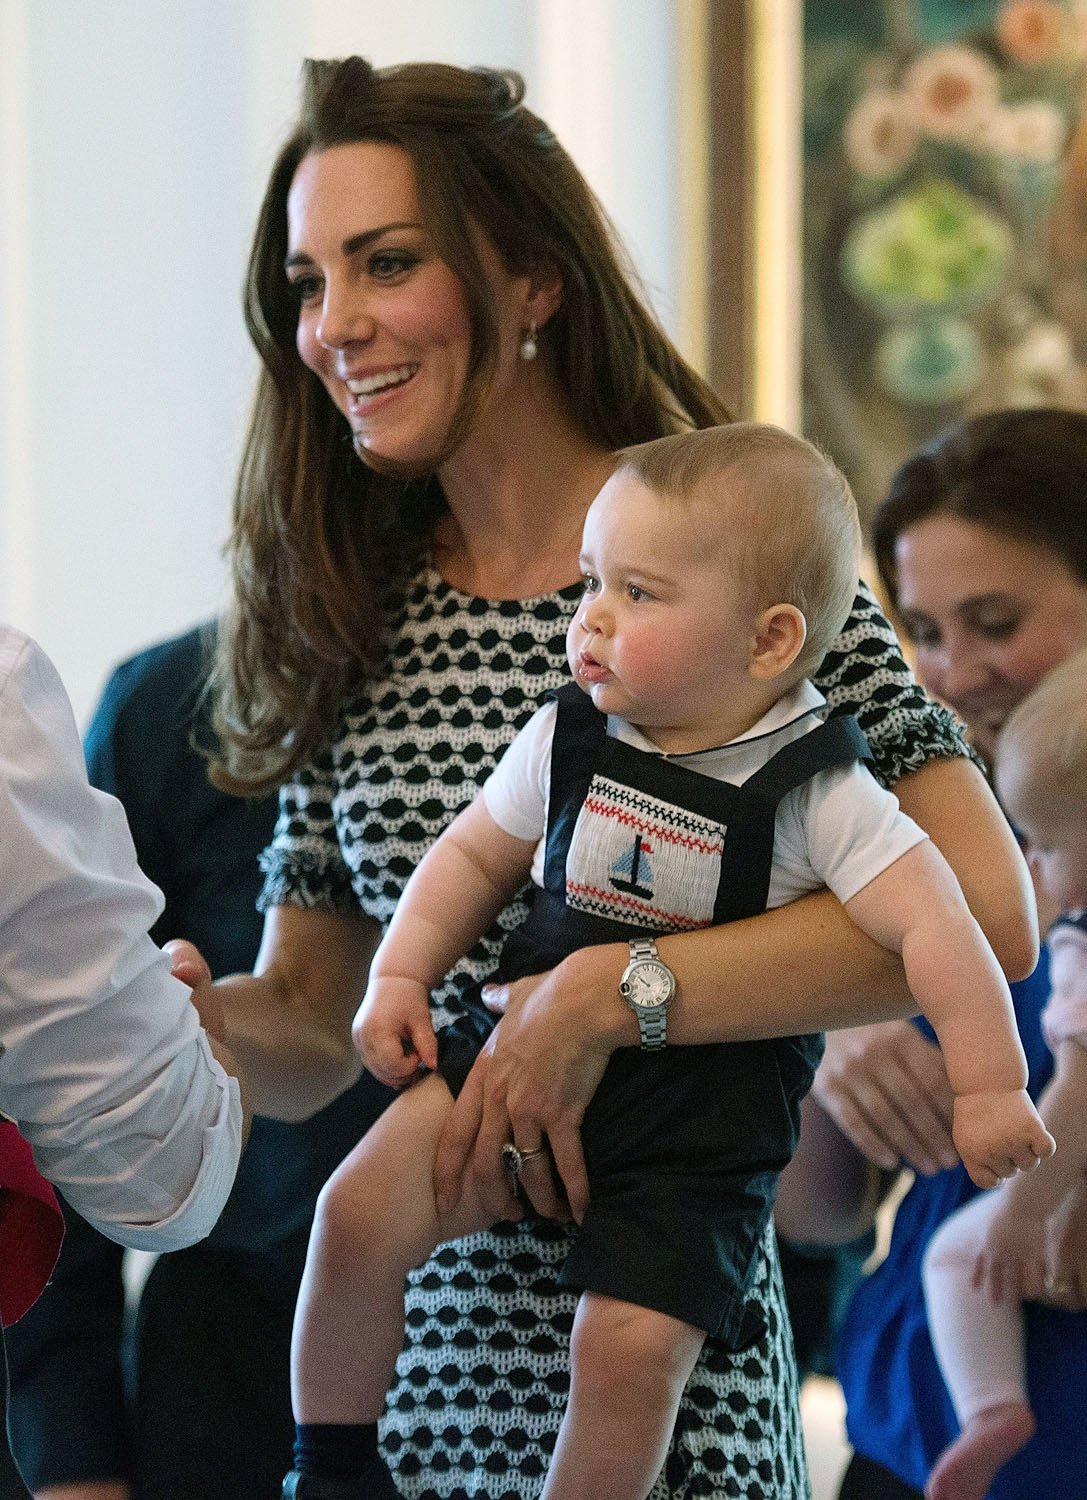 <strong>Oh, Baby</strong>Catherine, Duchess of Cambridge holds Prince George of Cambridge as they attend Plunkett's Parent's Group on April 9, 2014 in Wellington, New Zealand, during their three-week tour of Australia and New Zealand, the first official trip overseas with their son, Prince George of Cambridge.